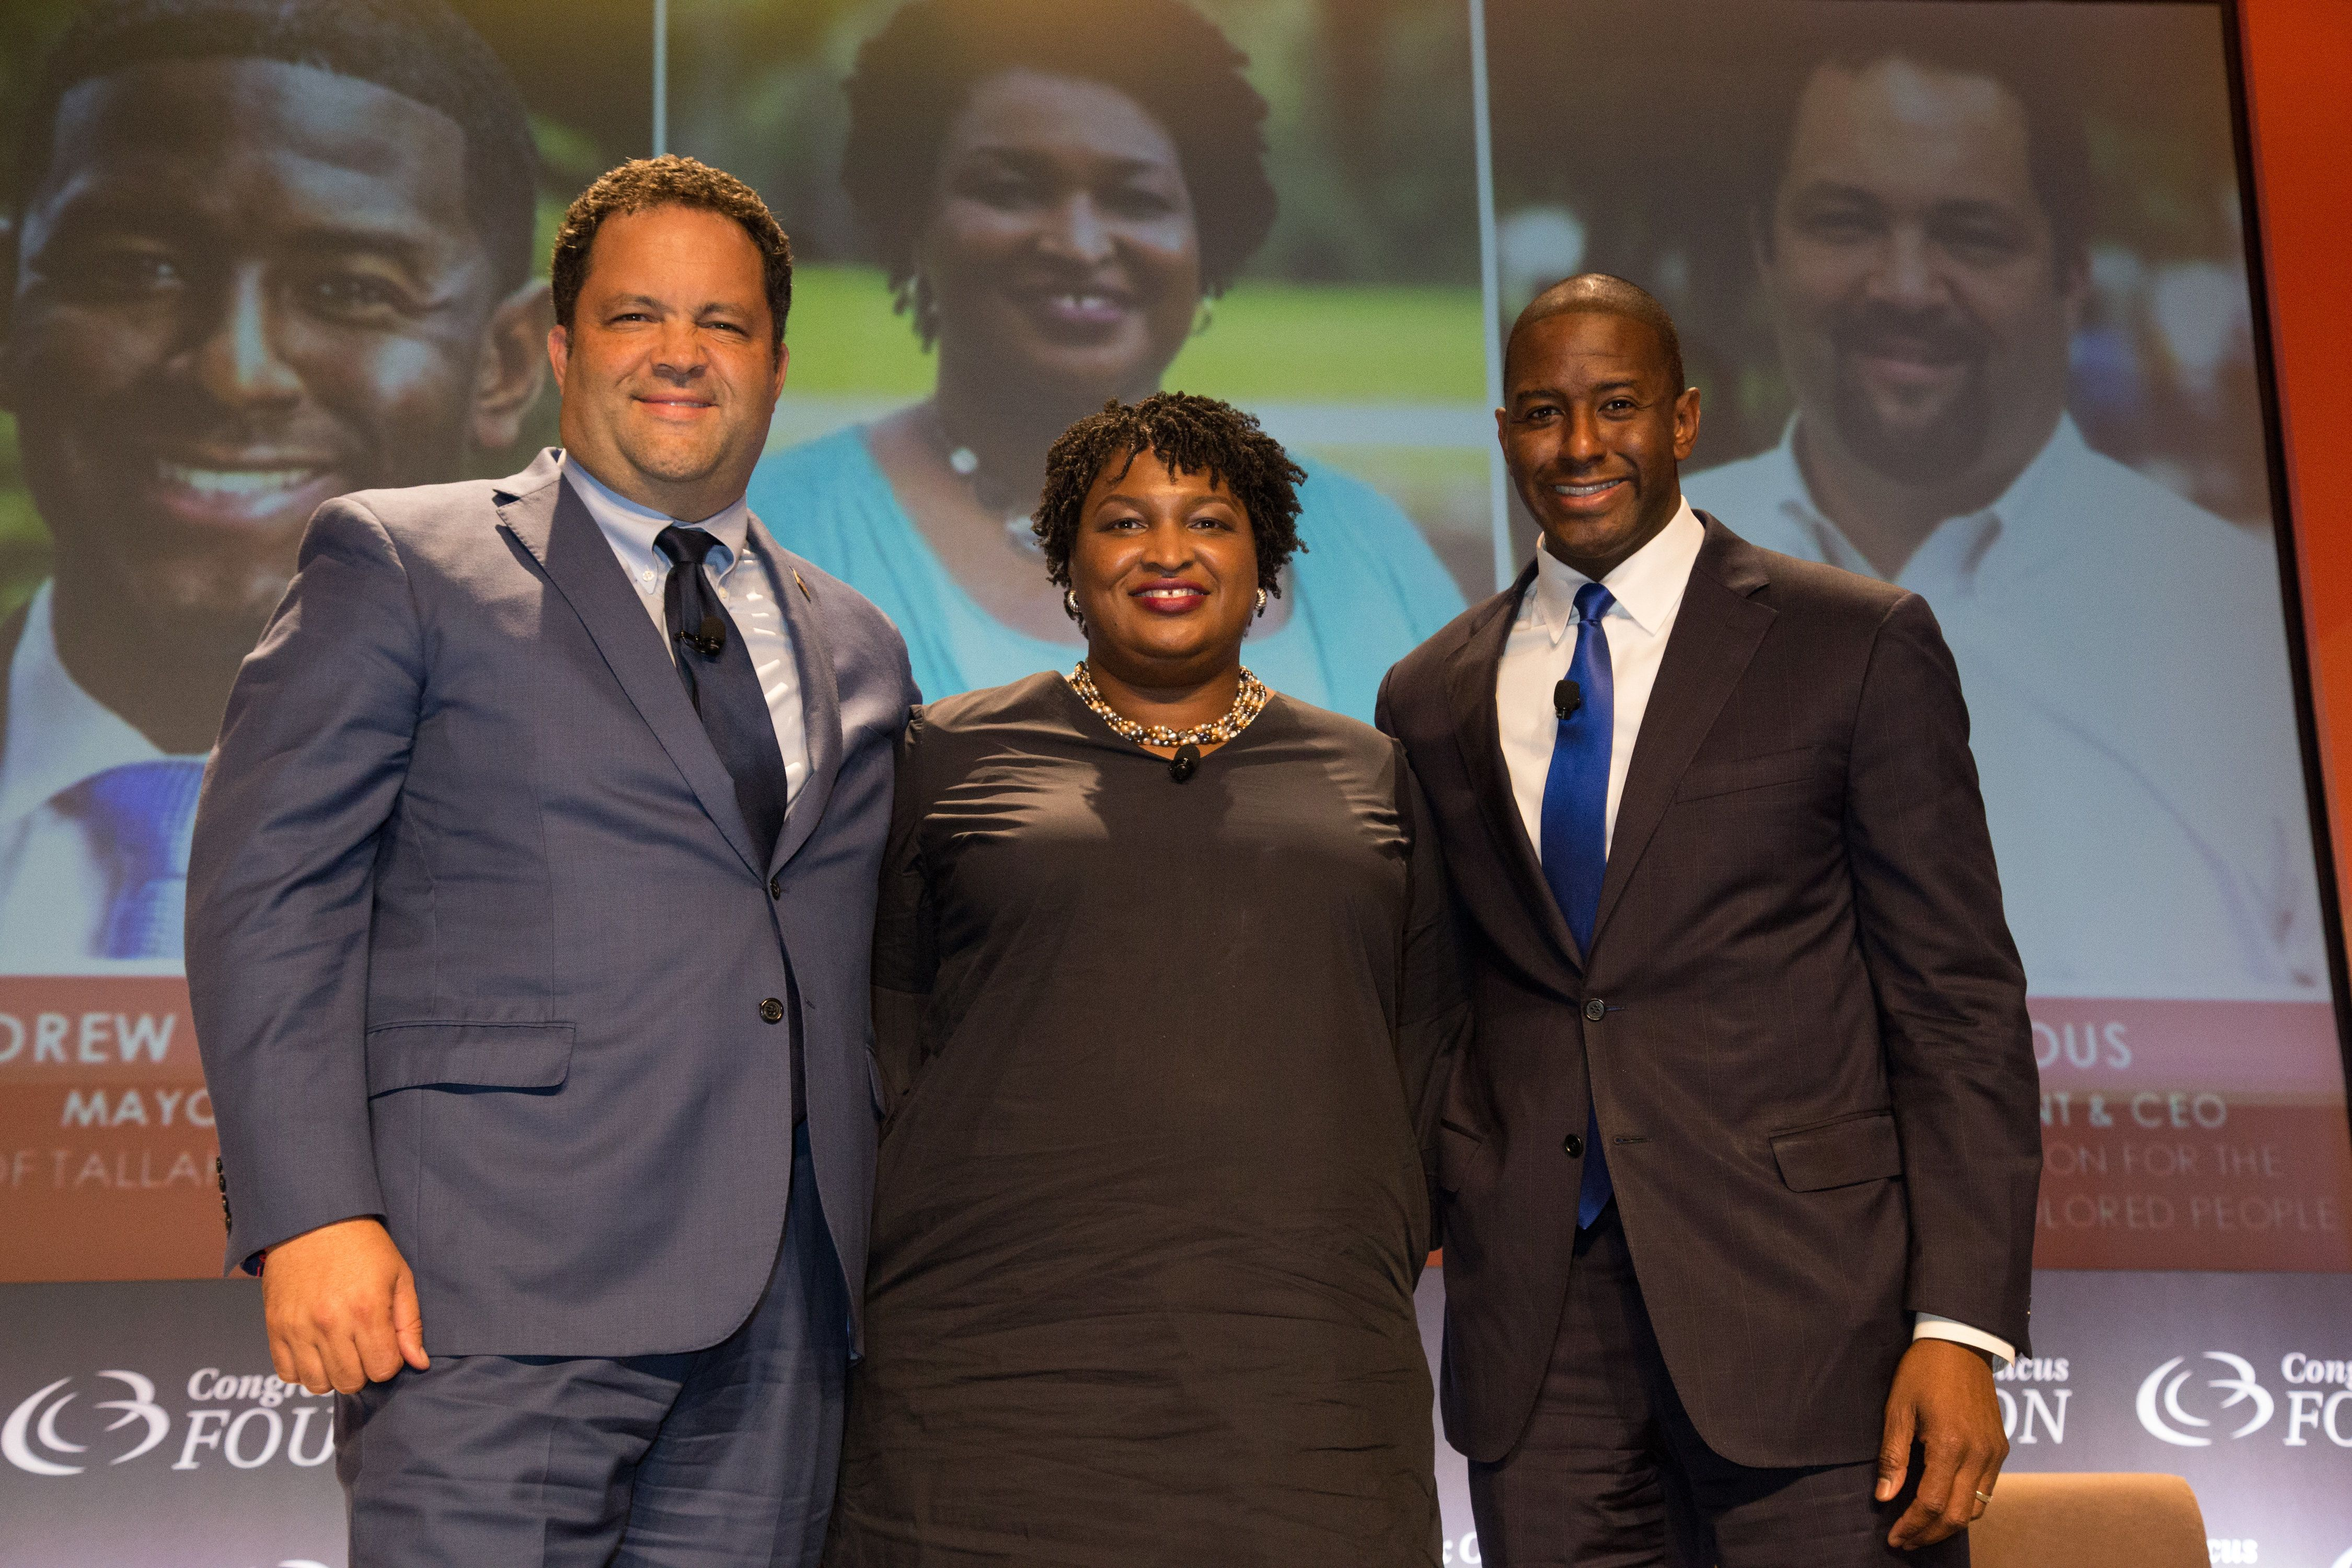 WASHINGTON, DC - SEPTEMBER 13:  (L-R) Democratic nominee for Governor of Maryland, Ben Jealous, Democratic nominee for Governor of Georgia, Stacey Abrams, Democratic nominee for Governor of Florida and Mayor, Andrew Gillum serves as panelists for 'The Politics of The New South: History In The Making Town Hall A Historic Policy Discussion' at 48th Annual Congressional Black Caucus Foundation Conference on September 13, 2018 in Washington, DC.  (Photo by Brian Stukes/Getty Images)